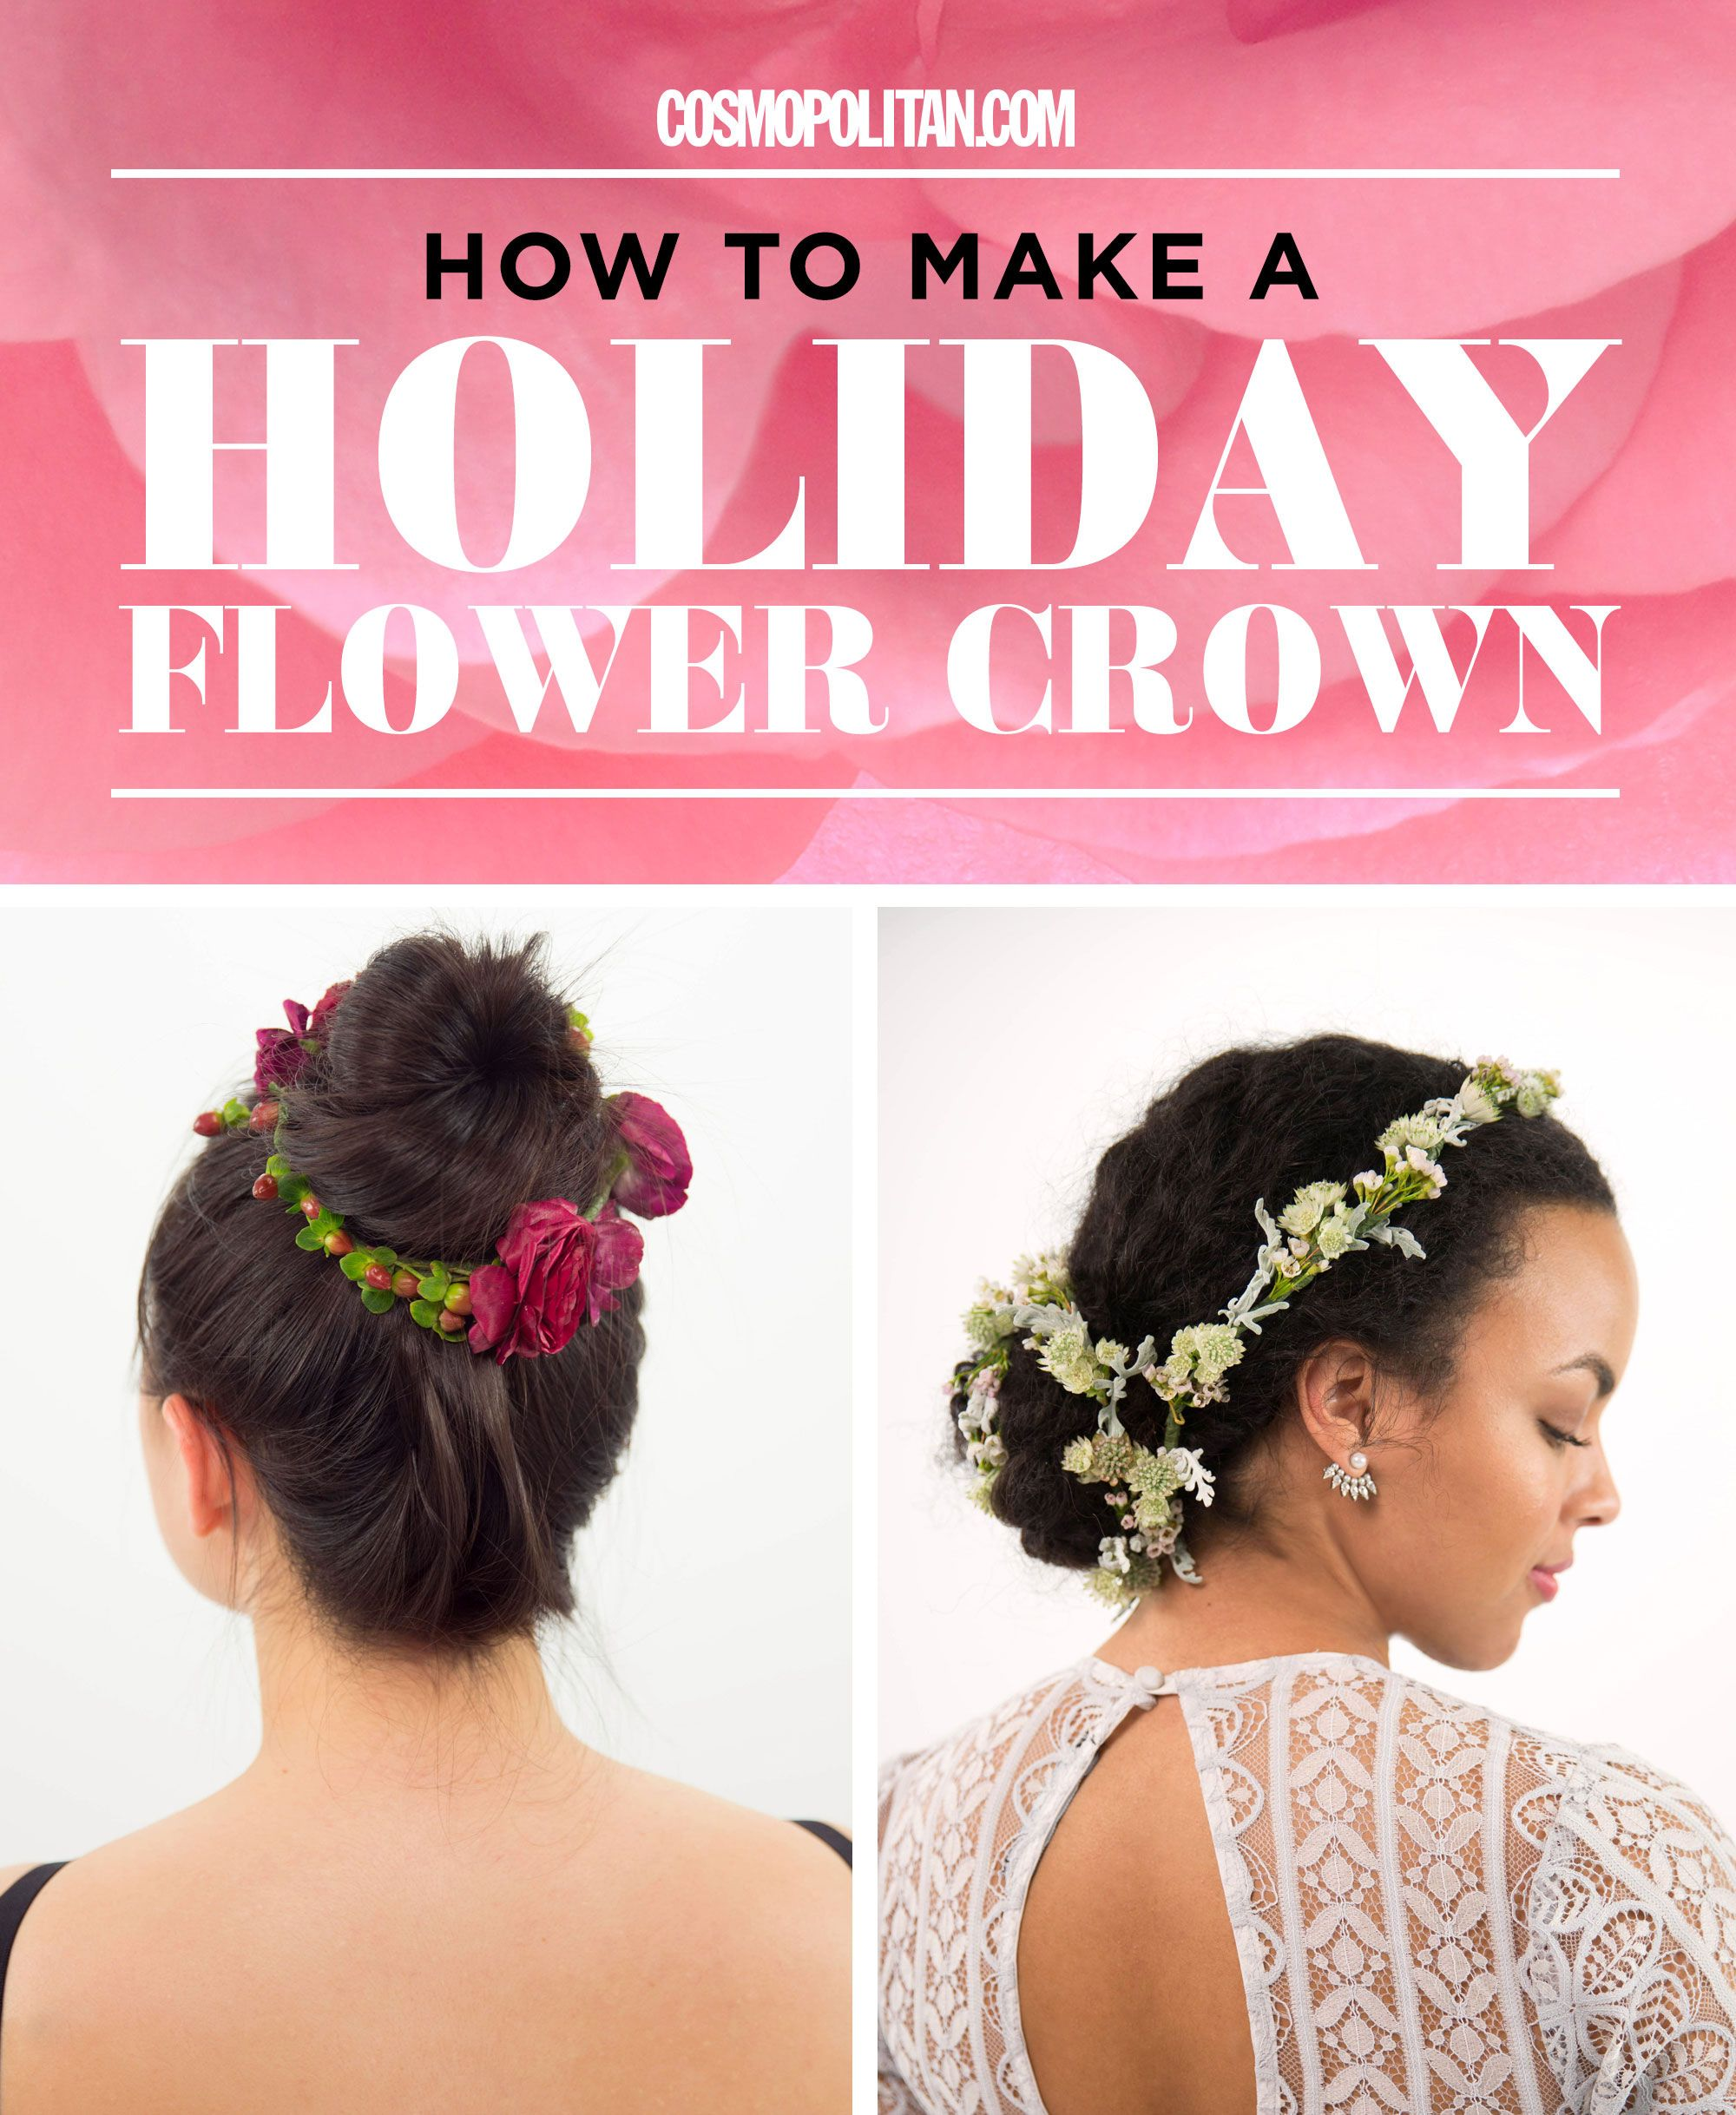 How to make a winter flower crown best flower crown ideas for the how to make a winter flower crown best flower crown ideas for the holidays izmirmasajfo